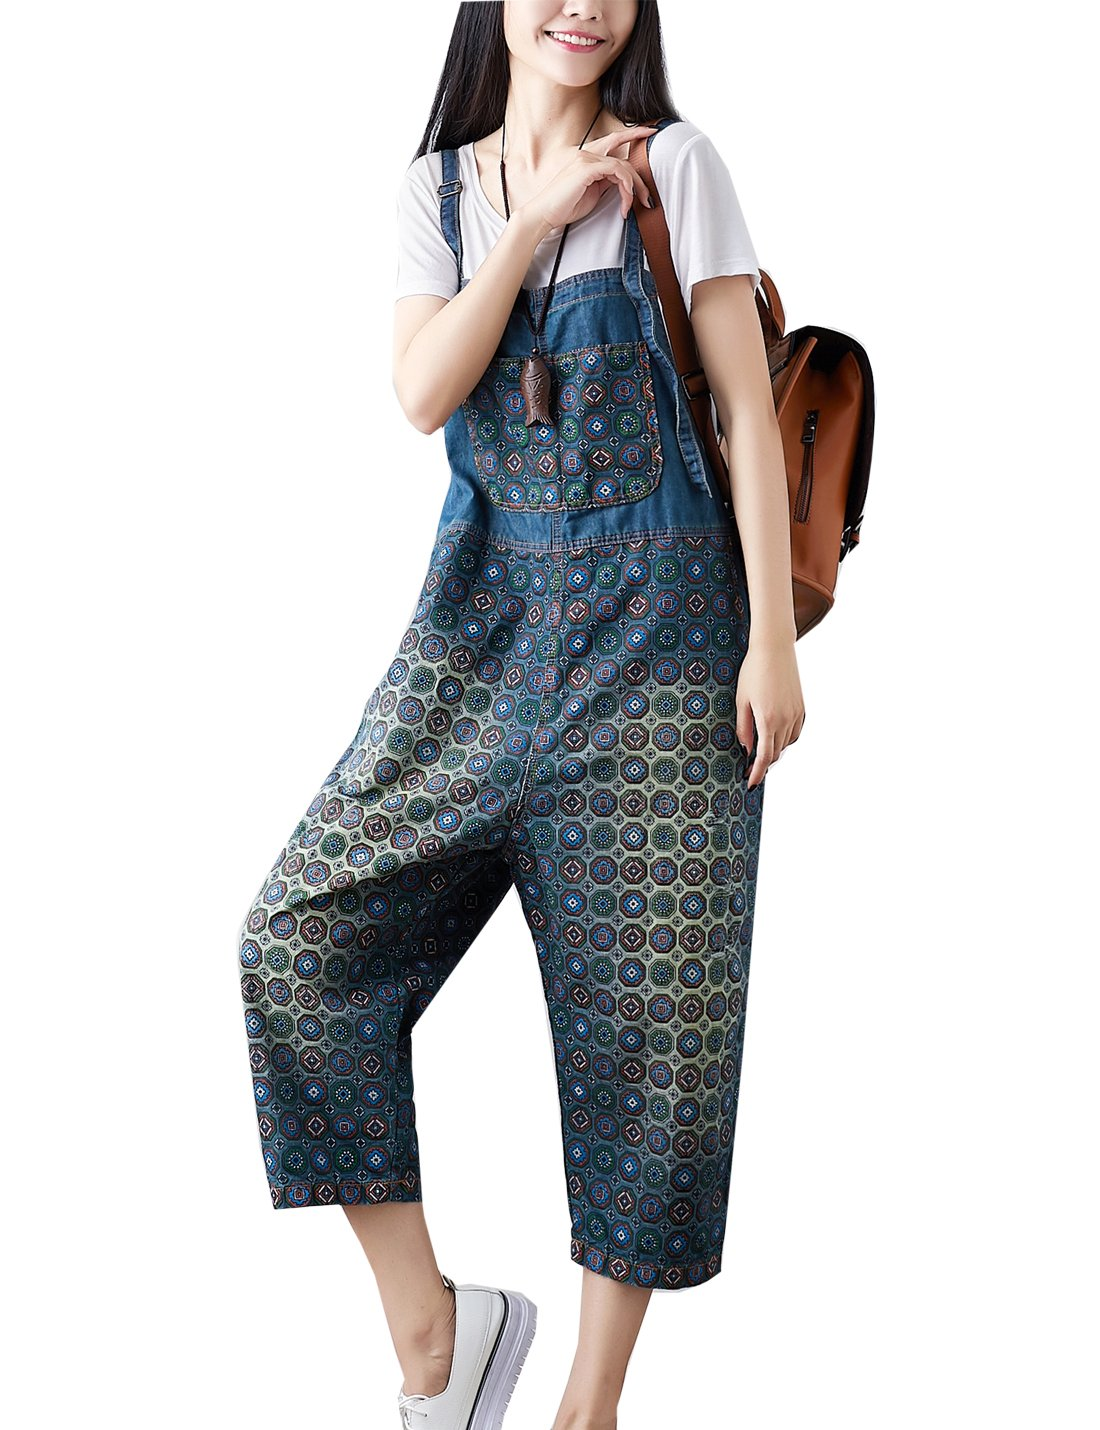 Flygo Women's Loose Baggy Cotton Wide Leg Jumpsuit Rompers Overalls Harem Pants (One Size, Style 03 Dark Blue)